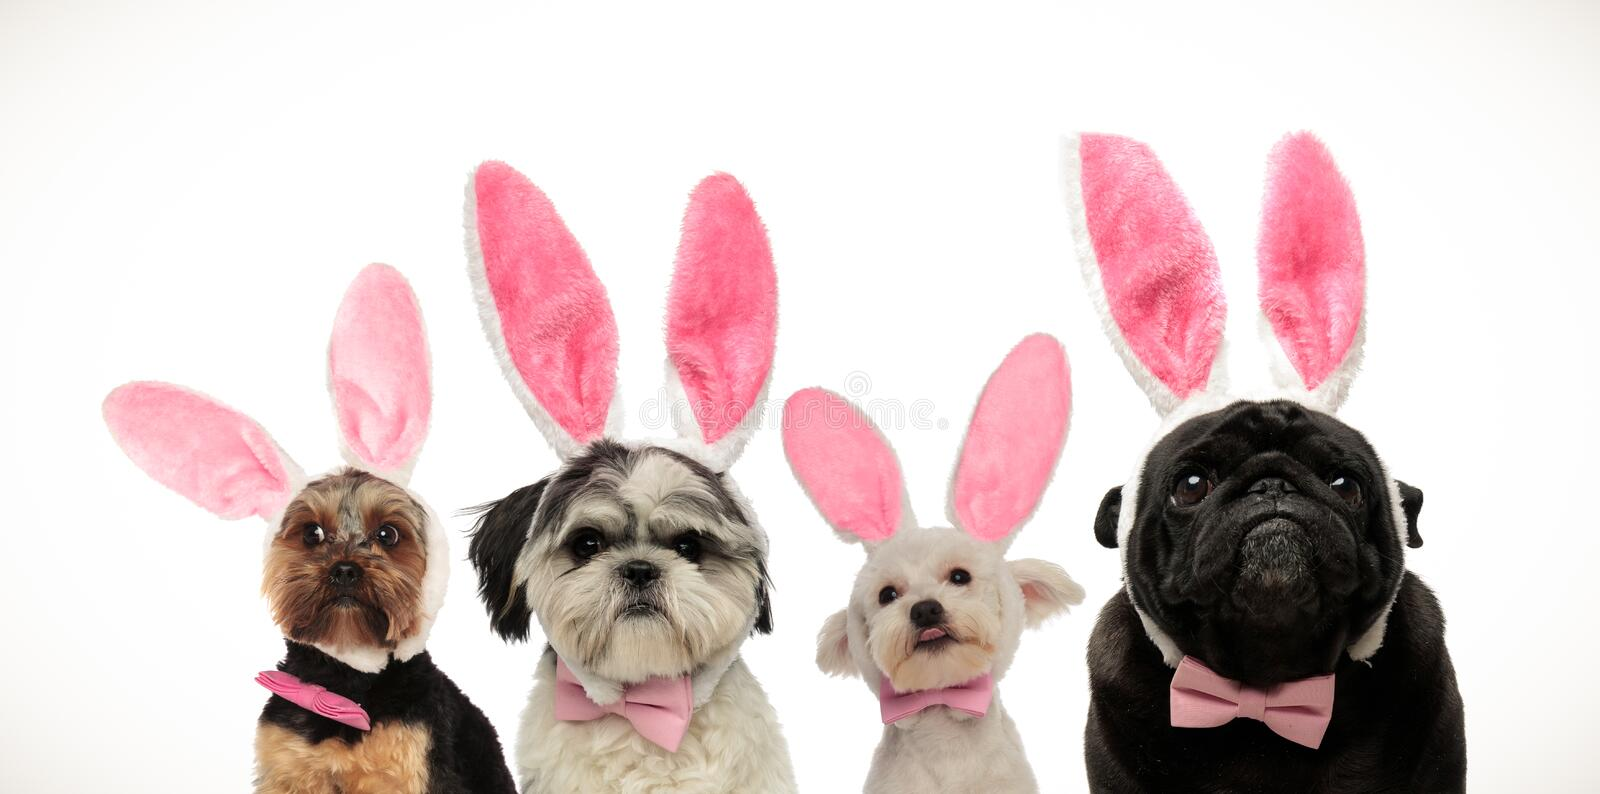 Four cute little dogs wearing bunny ears for easter. Team of four cute little dogs wearing bunny ears for easter, on white background royalty free stock photos